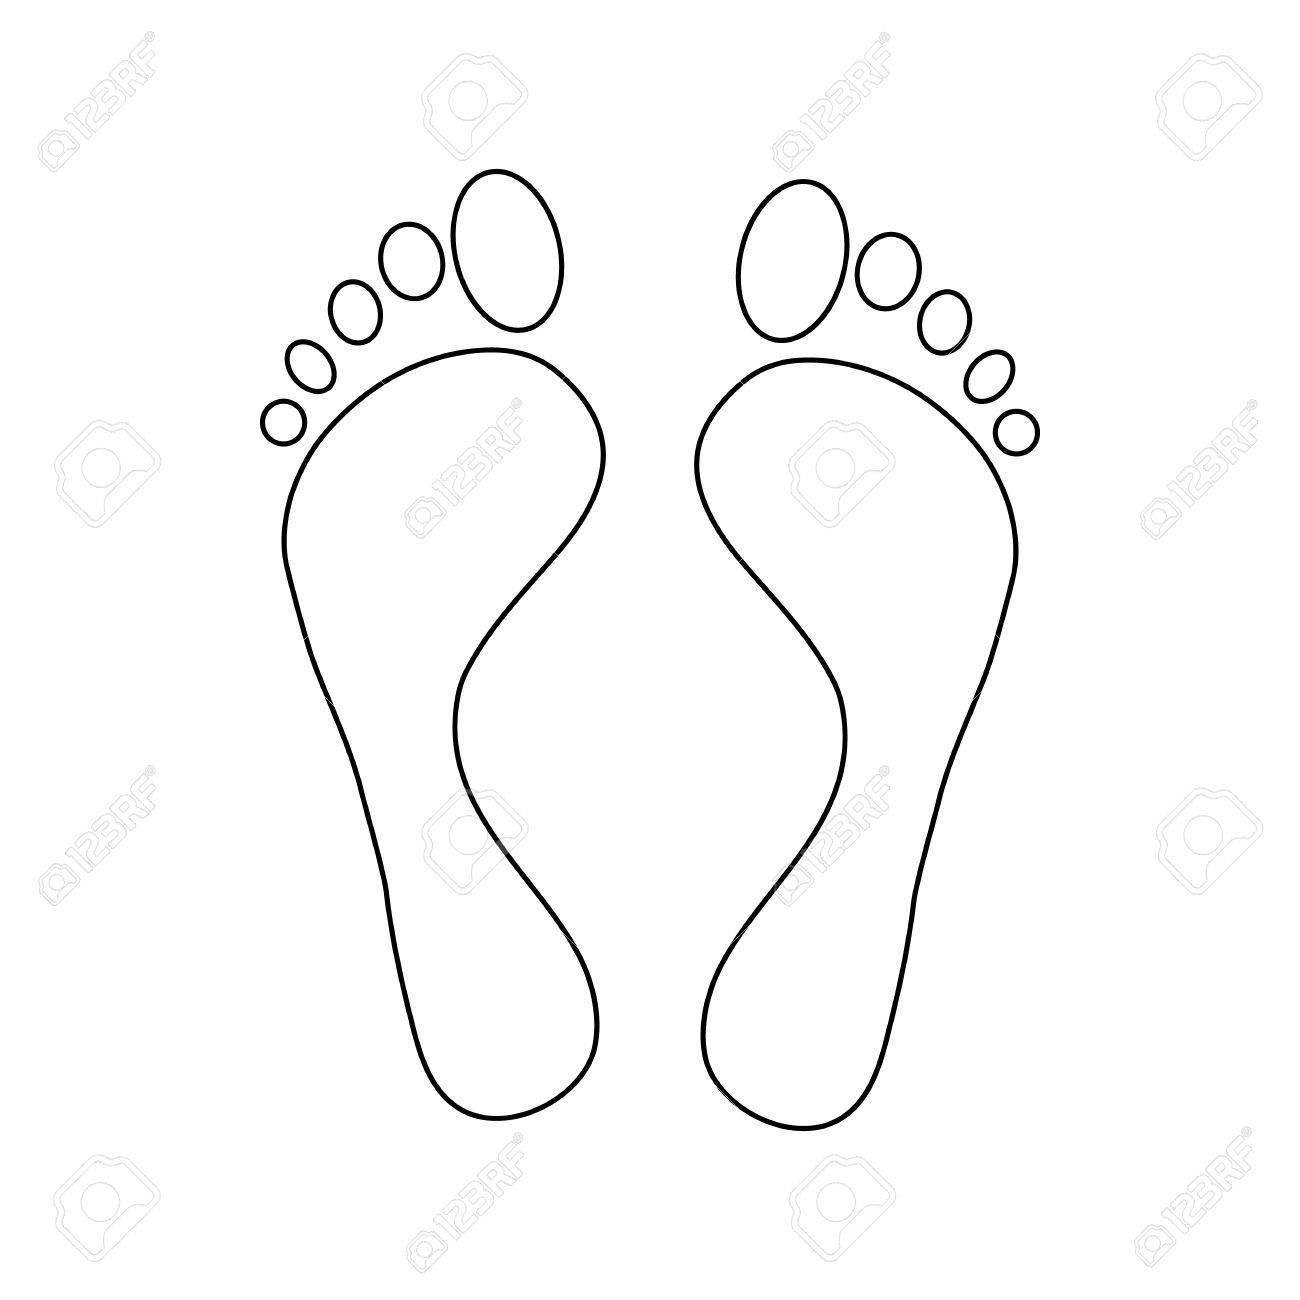 Foot Outline Drawing At Getdrawings